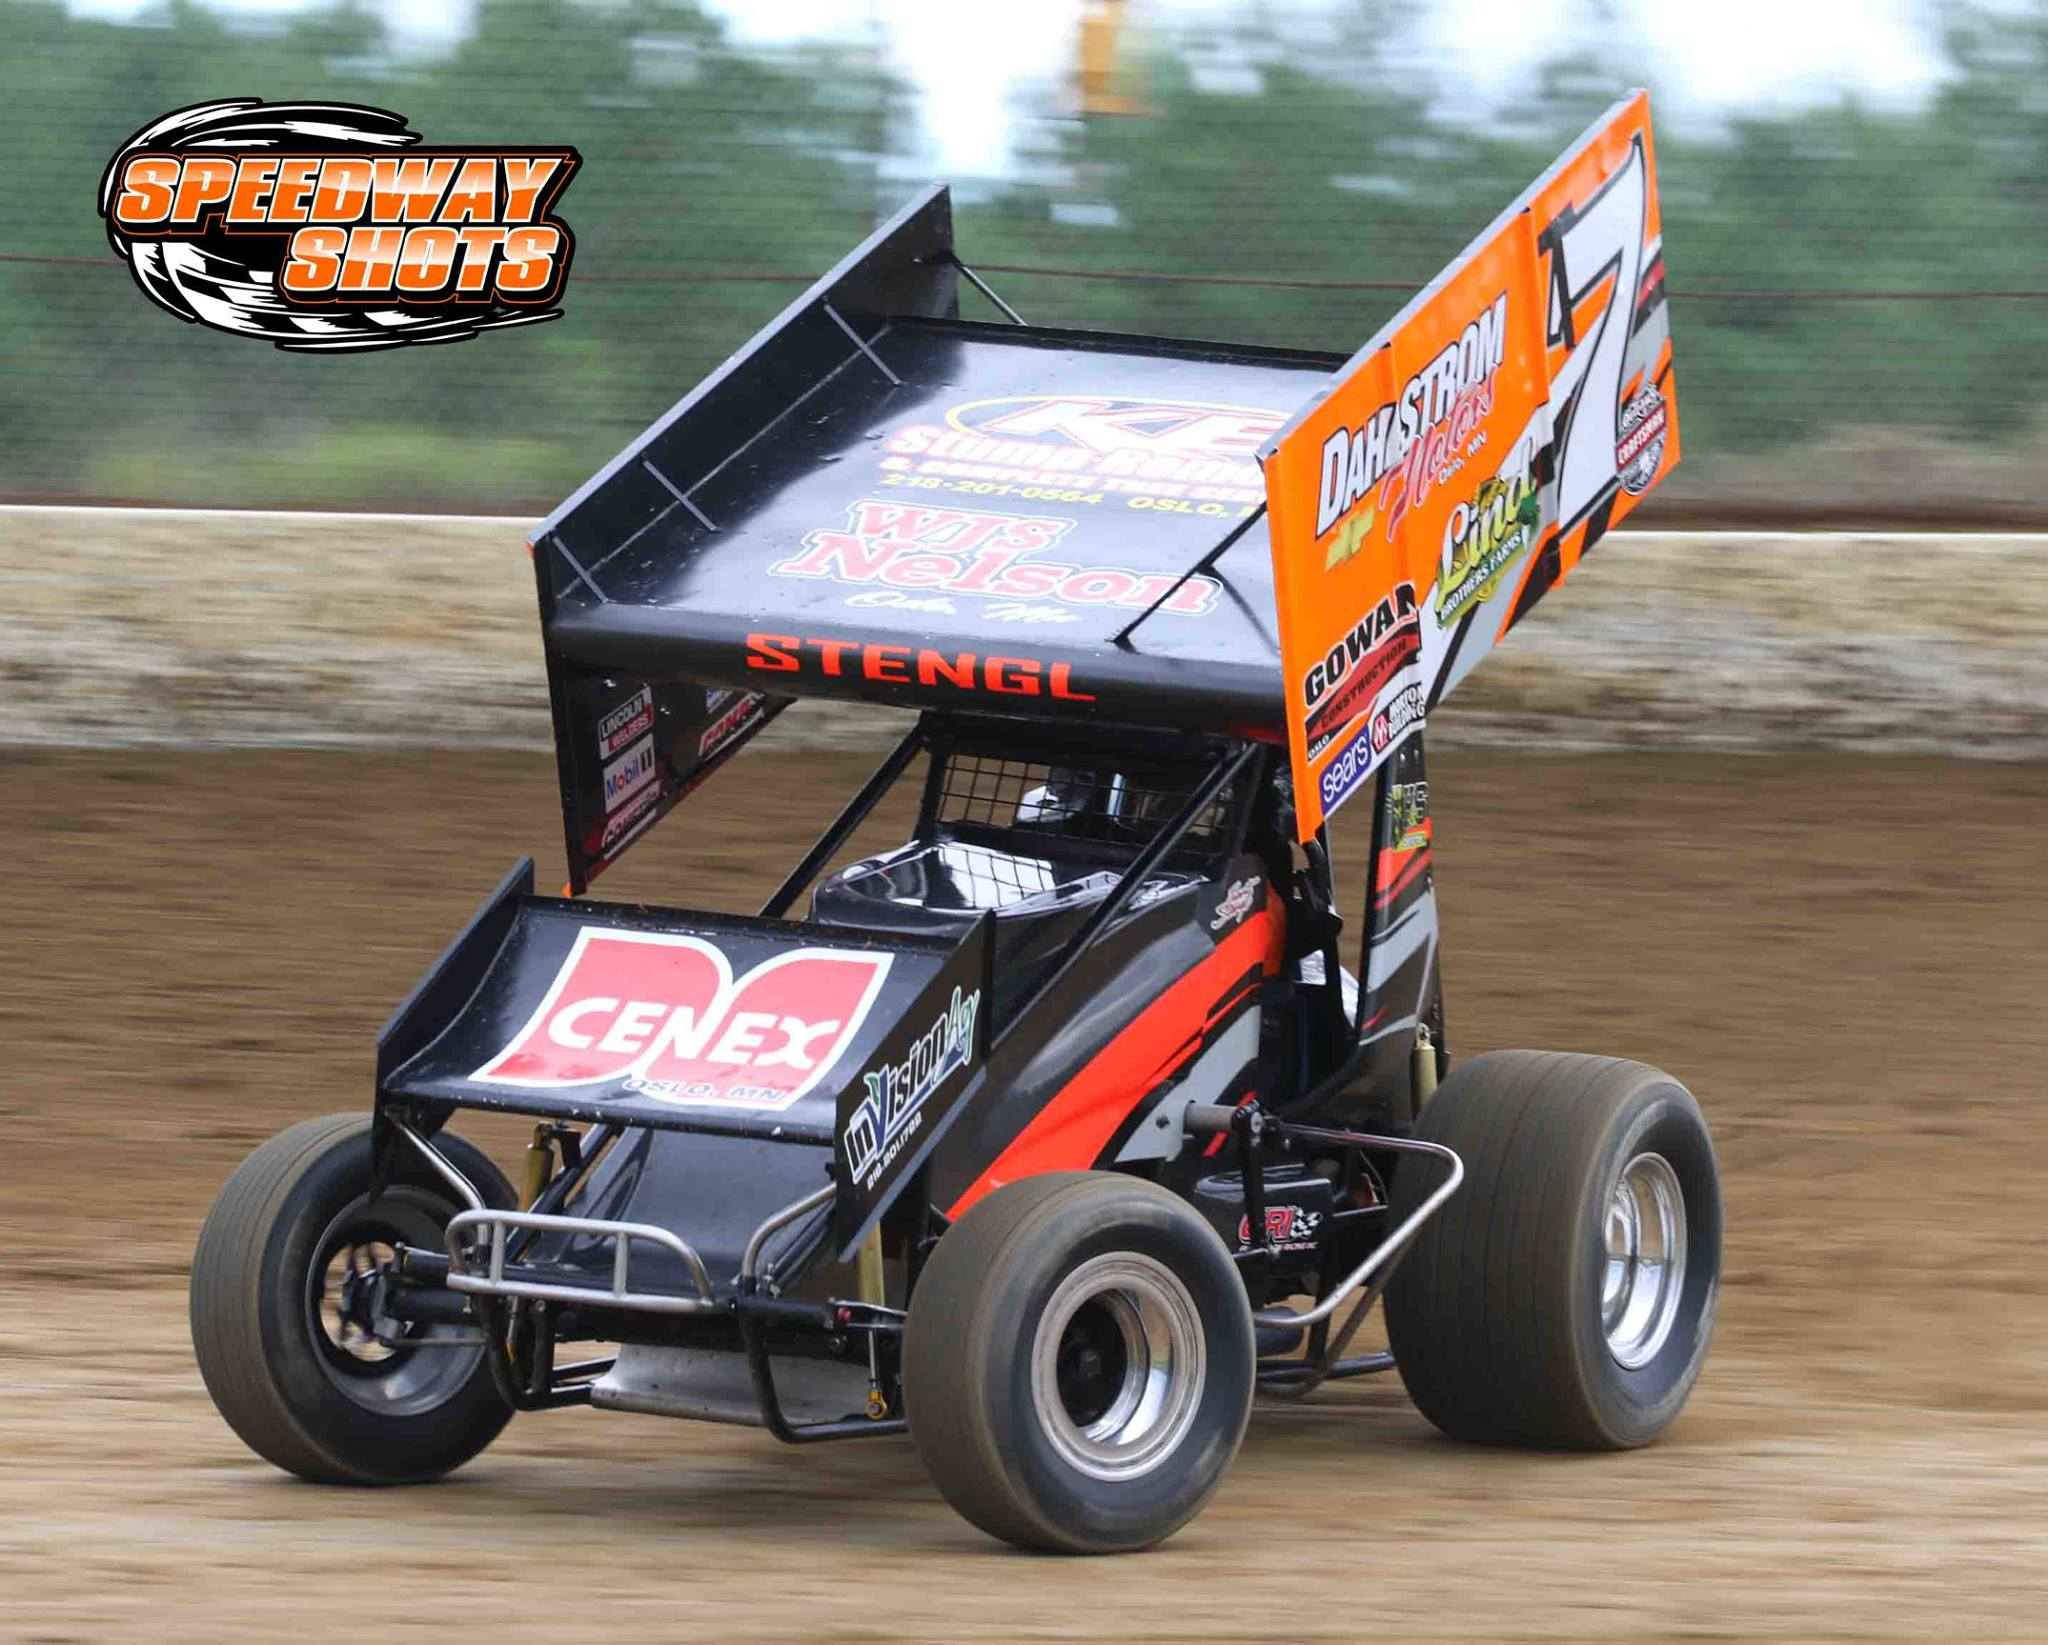 Trent Stengl, World of Outlaws, Speedway Shots, Mike Spieker